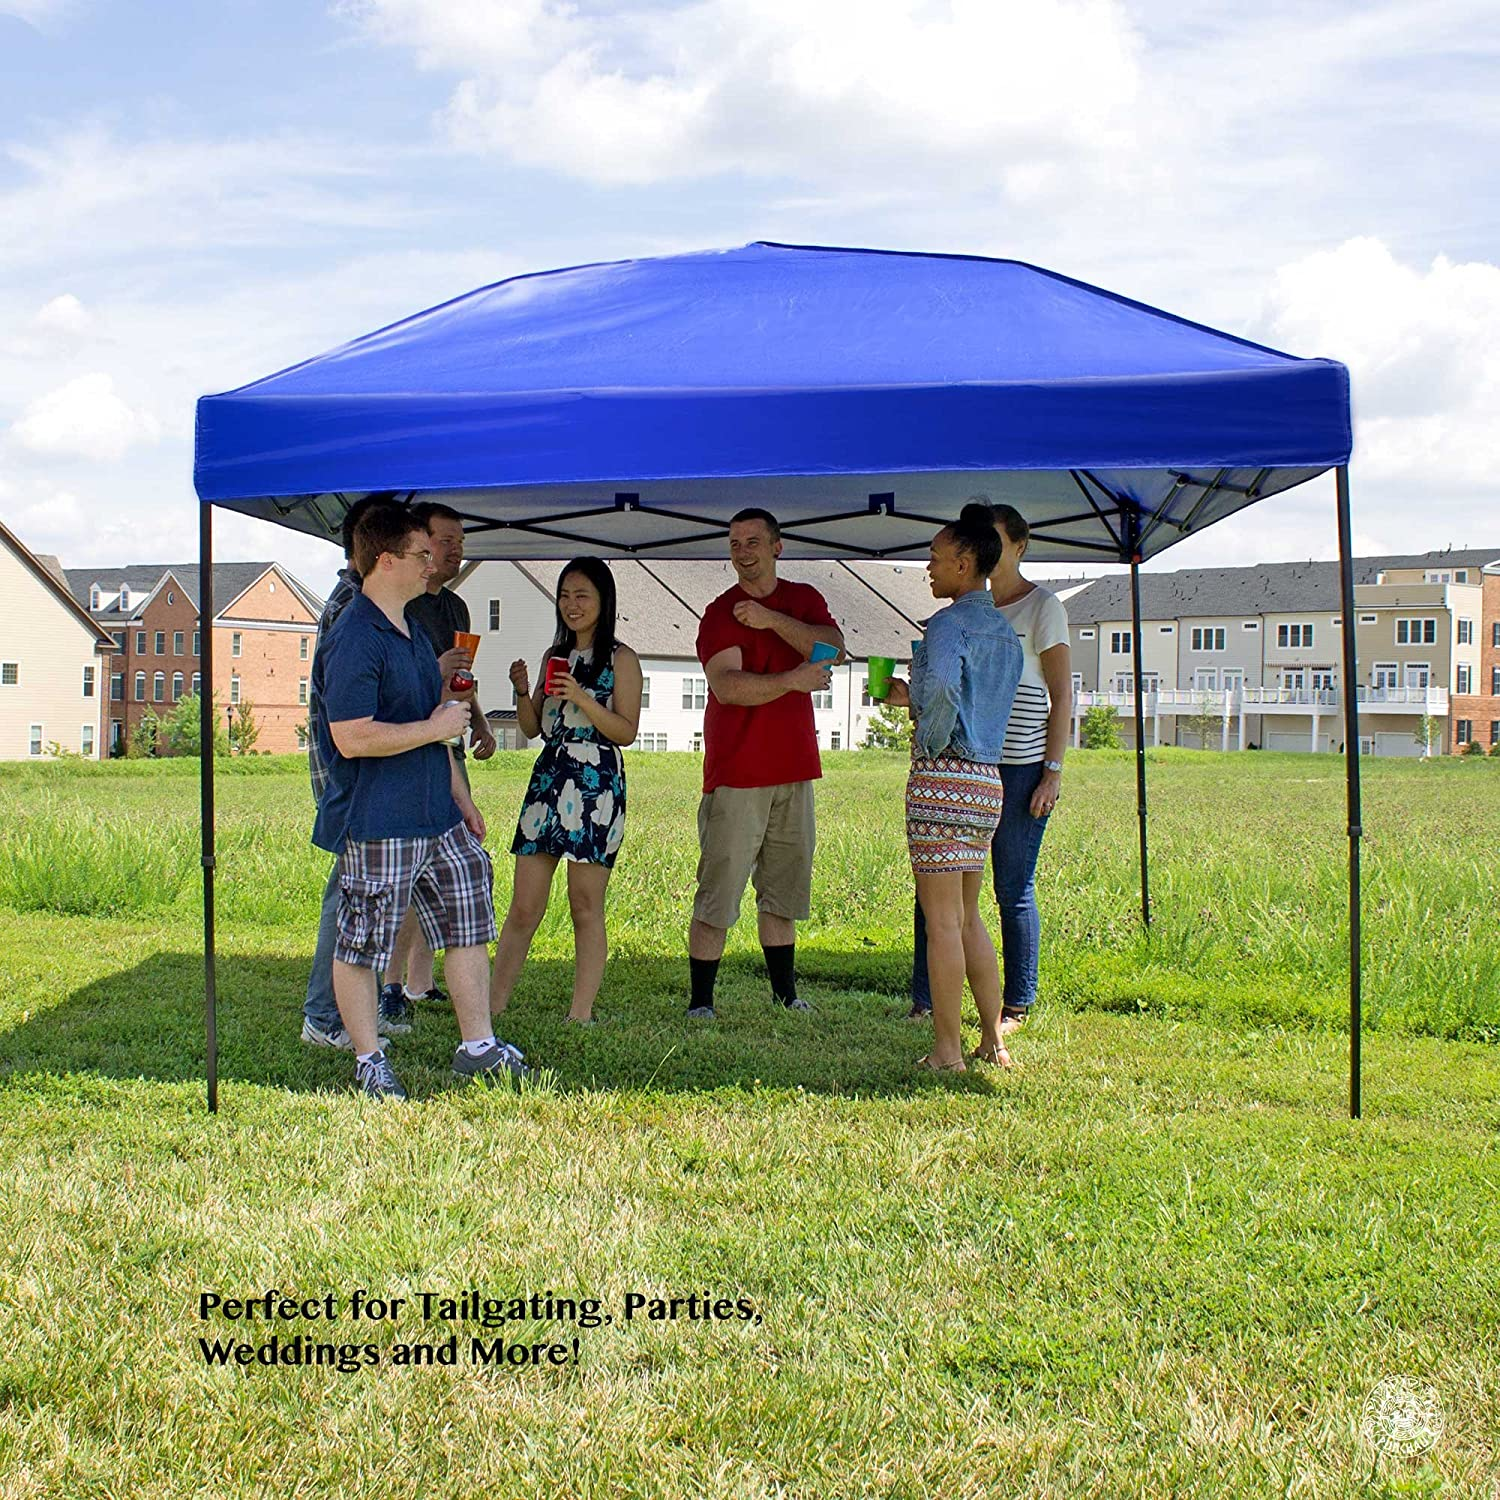 Amazon.com Pop Up Canopy Tent 10 x 10 Feet Blue - UV Coated Waterproof Outdoor Party Gazebo Tent Garden u0026 Outdoor & Amazon.com: Pop Up Canopy Tent 10 x 10 Feet Blue - UV Coated ...